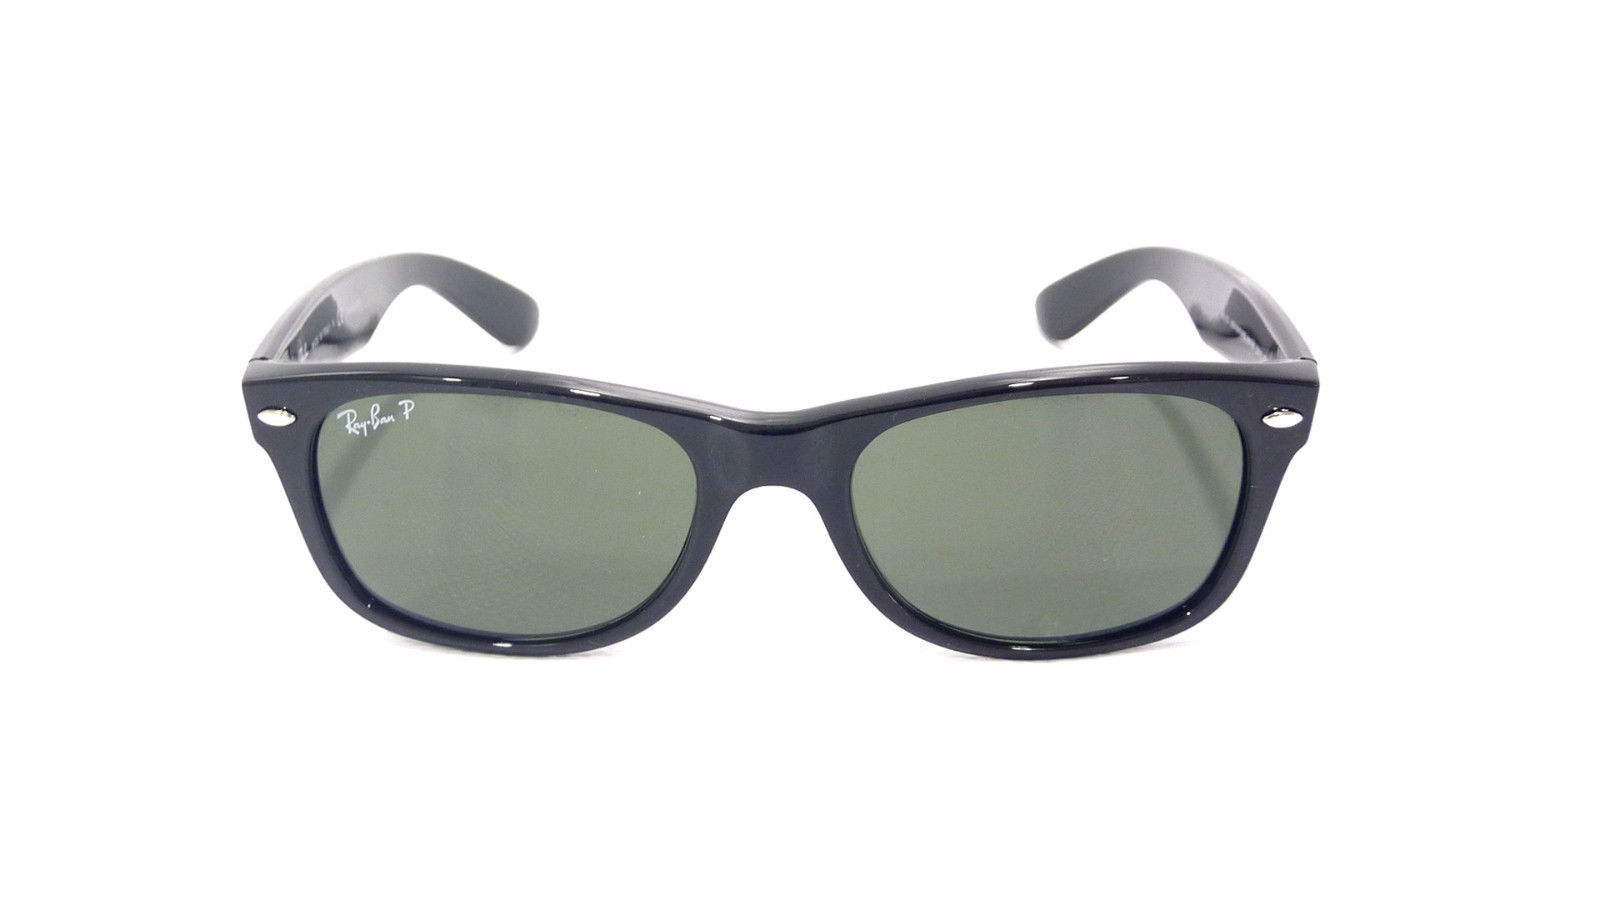 4dcc3e79aaedc Ray-Ban Neuf Wayfarer RB2132 901 58 Poli and 50 similar items